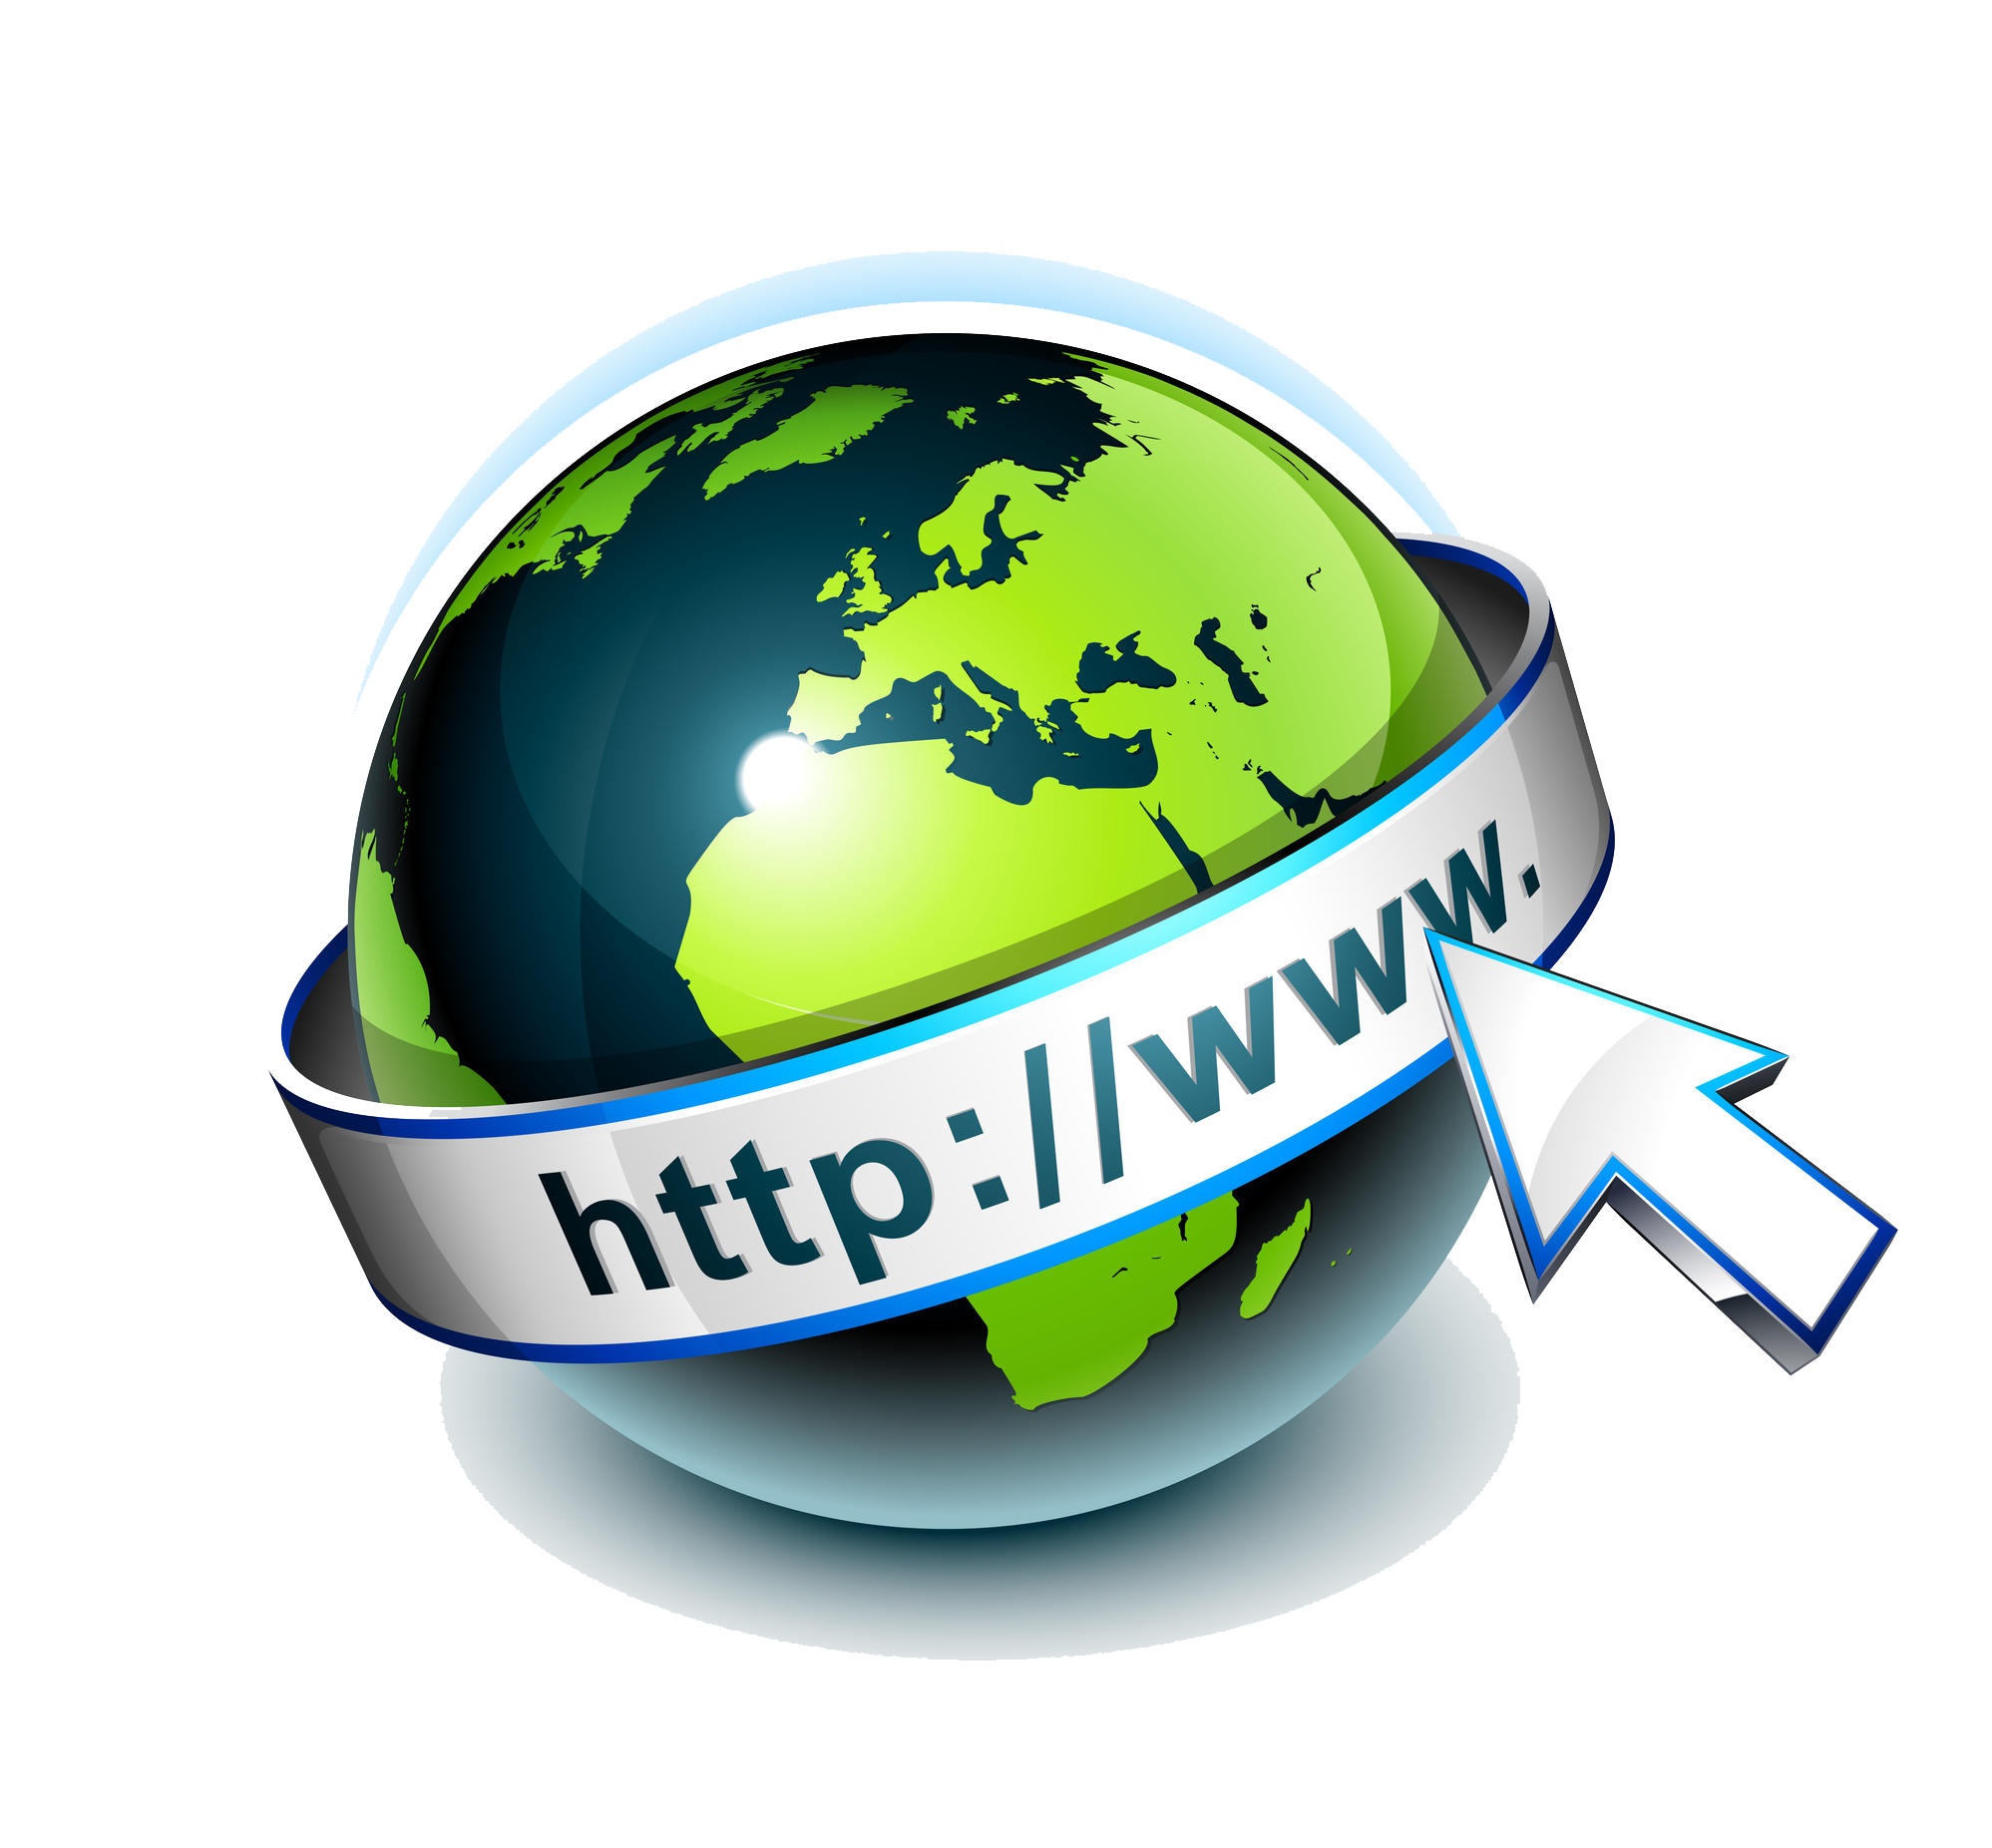 World-Wide-Web-PNG-Image